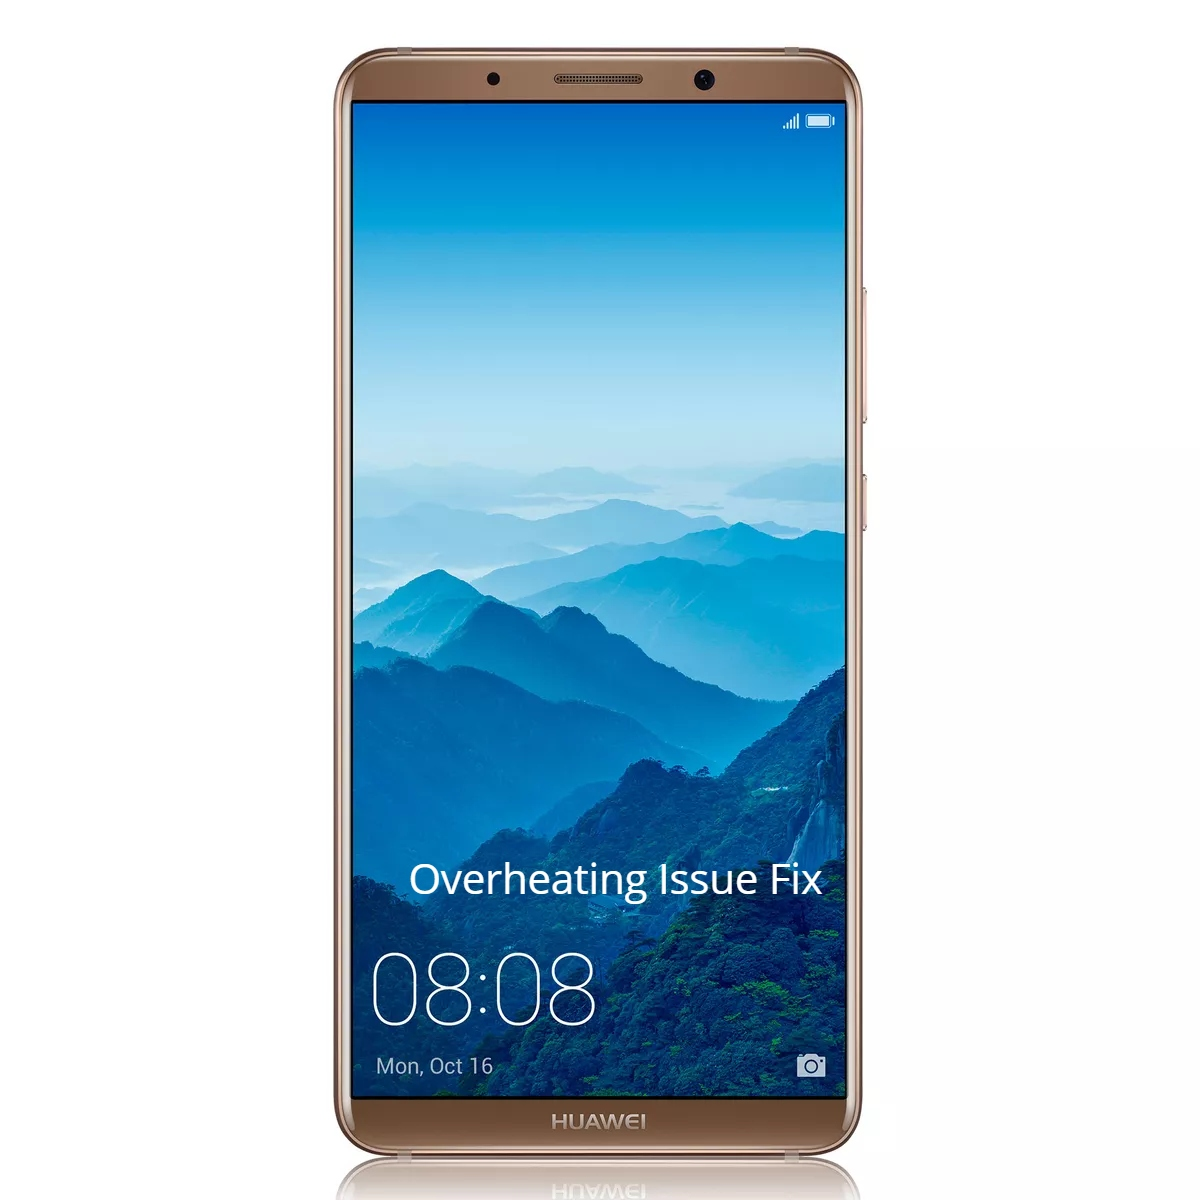 Huawei Mate 10 Pro Overheating issue fix quickly - infofuge